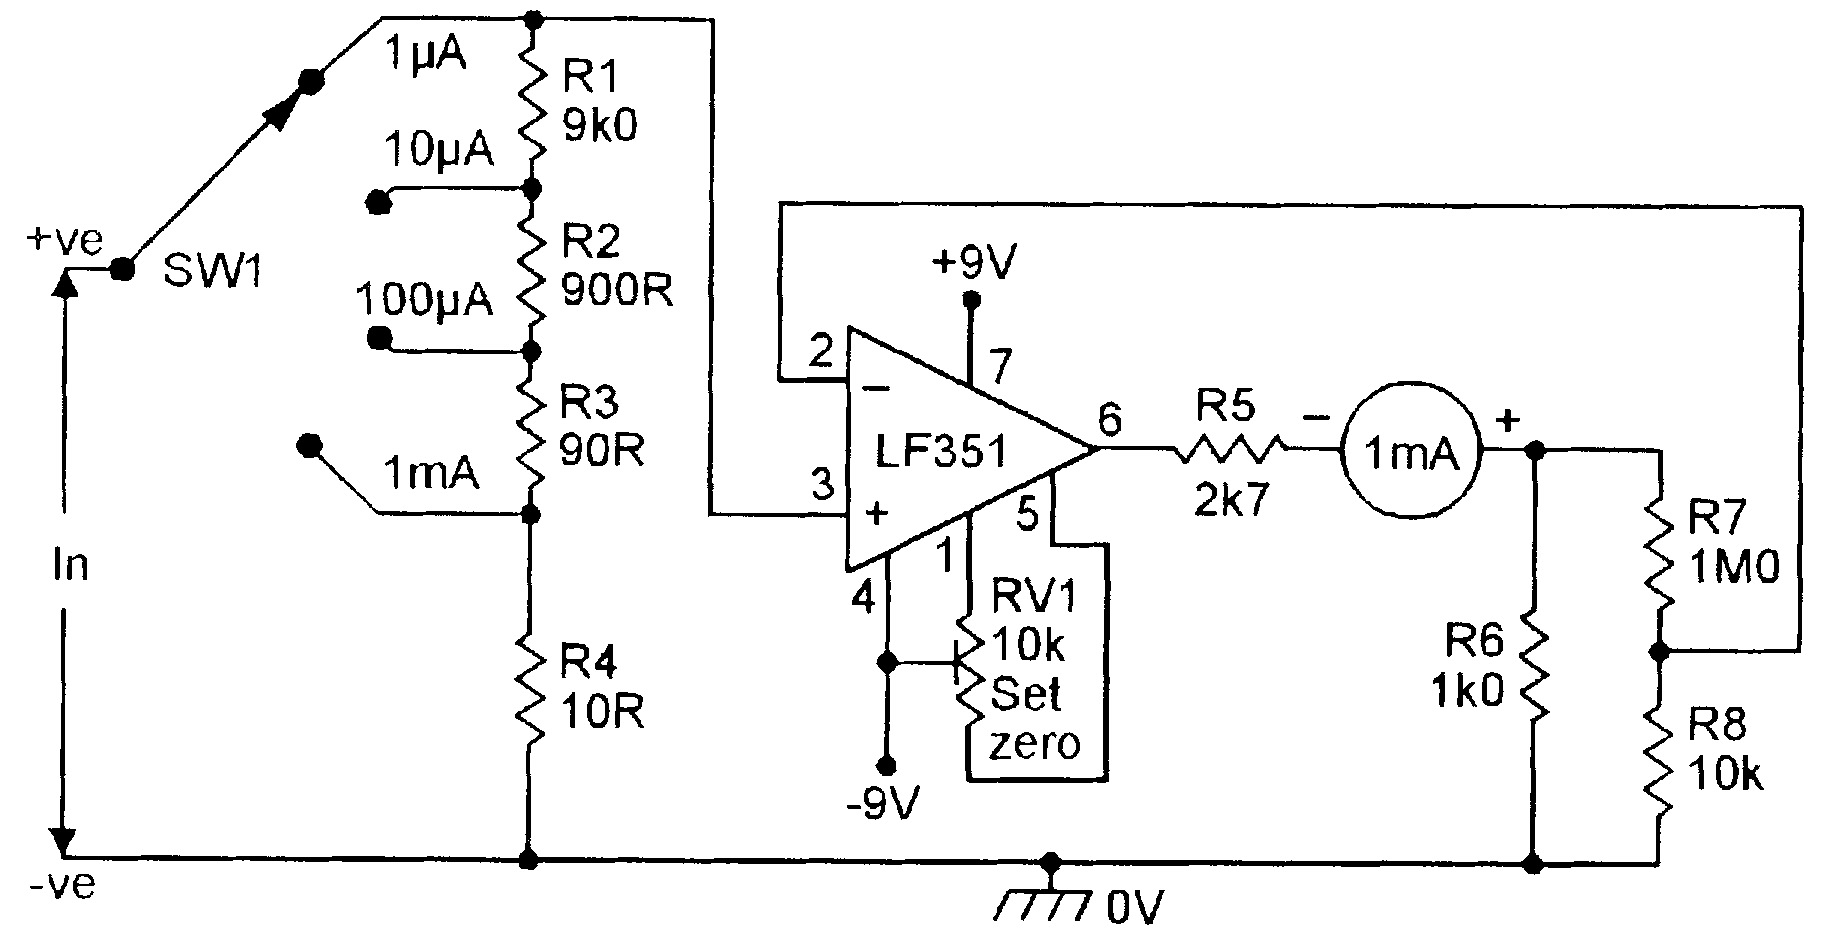 Op Amp Cookbook Part 4 Nuts Volts Magazine Block Diagram Inverting Amplifier Figure 14 Four Range Dc Microammeter